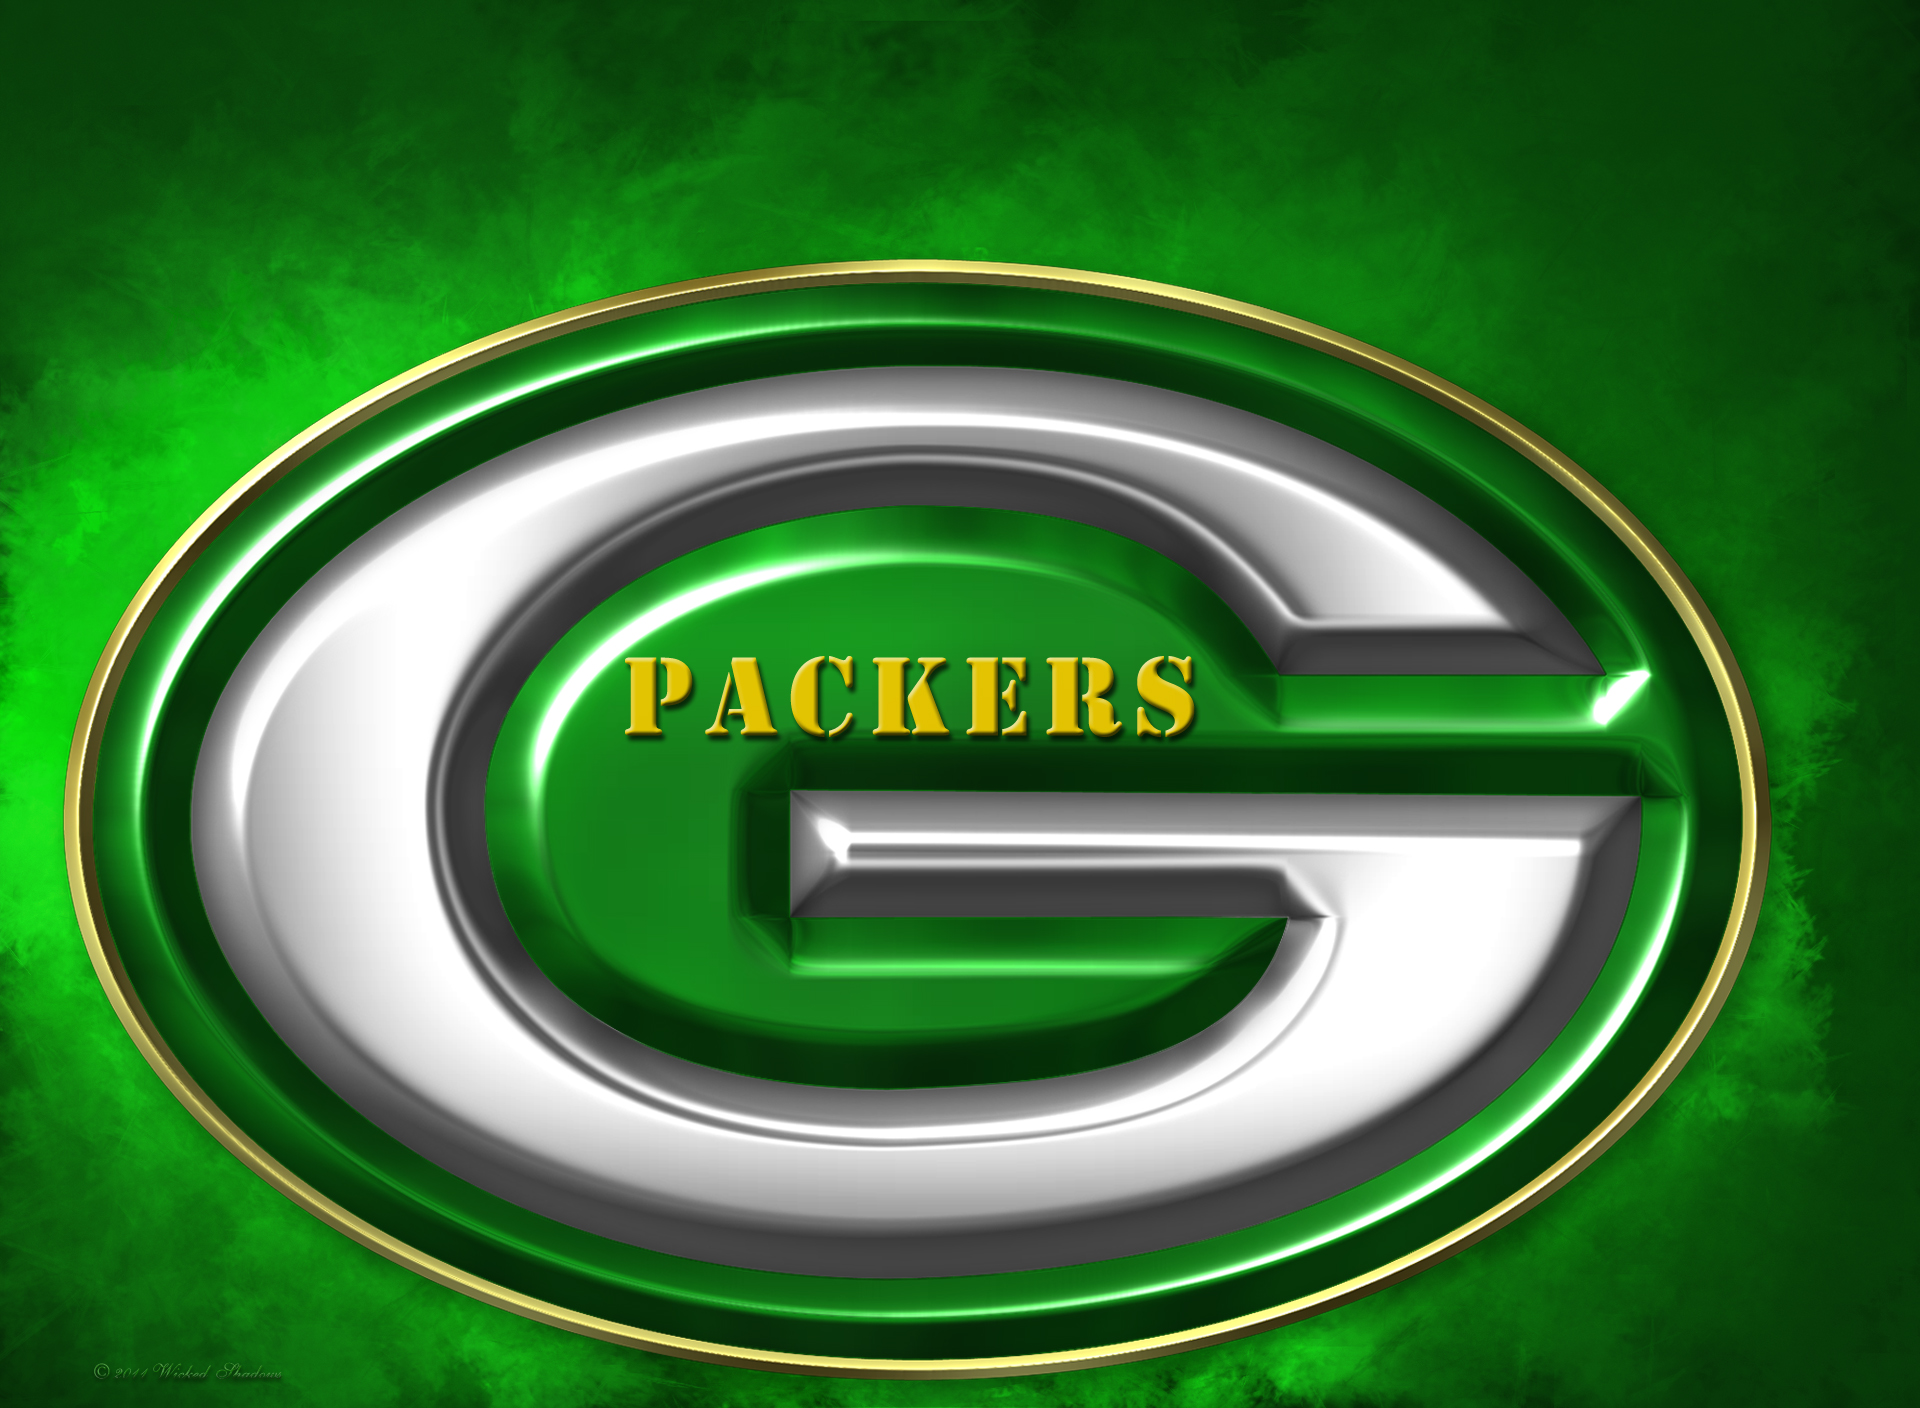 Wallpapers By Wicked Shadows Green Bay Packers 2011 3d Logo Wallpaper